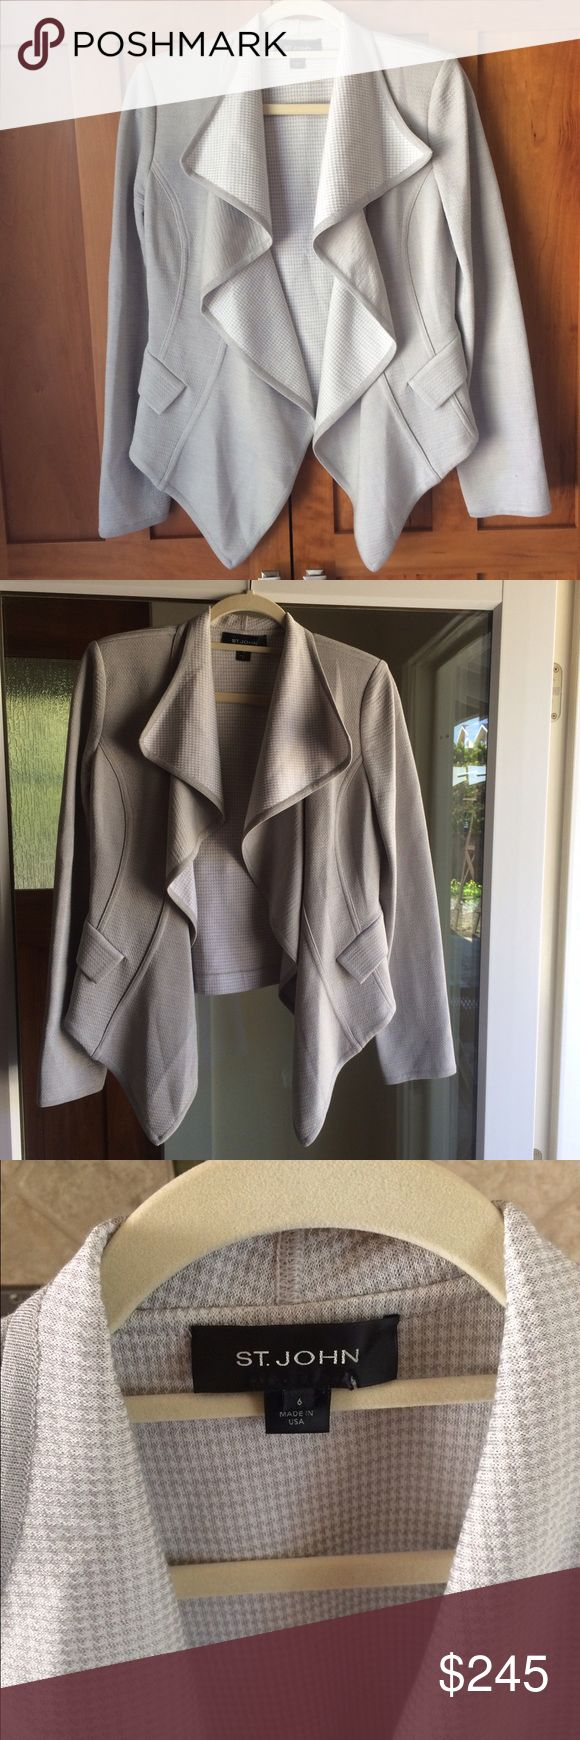 "St. John drape front coat Beautiful authentic St. John light gray and white drape front coat. Hangs wonderfully. Sorry I don't model. Has pockets. Worn twice amazing condition. Microscopic houndstooth print lining. I'm not certain what the fabric contents are. Length 28"" at longest point and 21"" in the back. Pit to pit approx 19"". This is an amazing deal so price is kind of firm however I do consider FAIR offers. St. John Jackets & Coats"